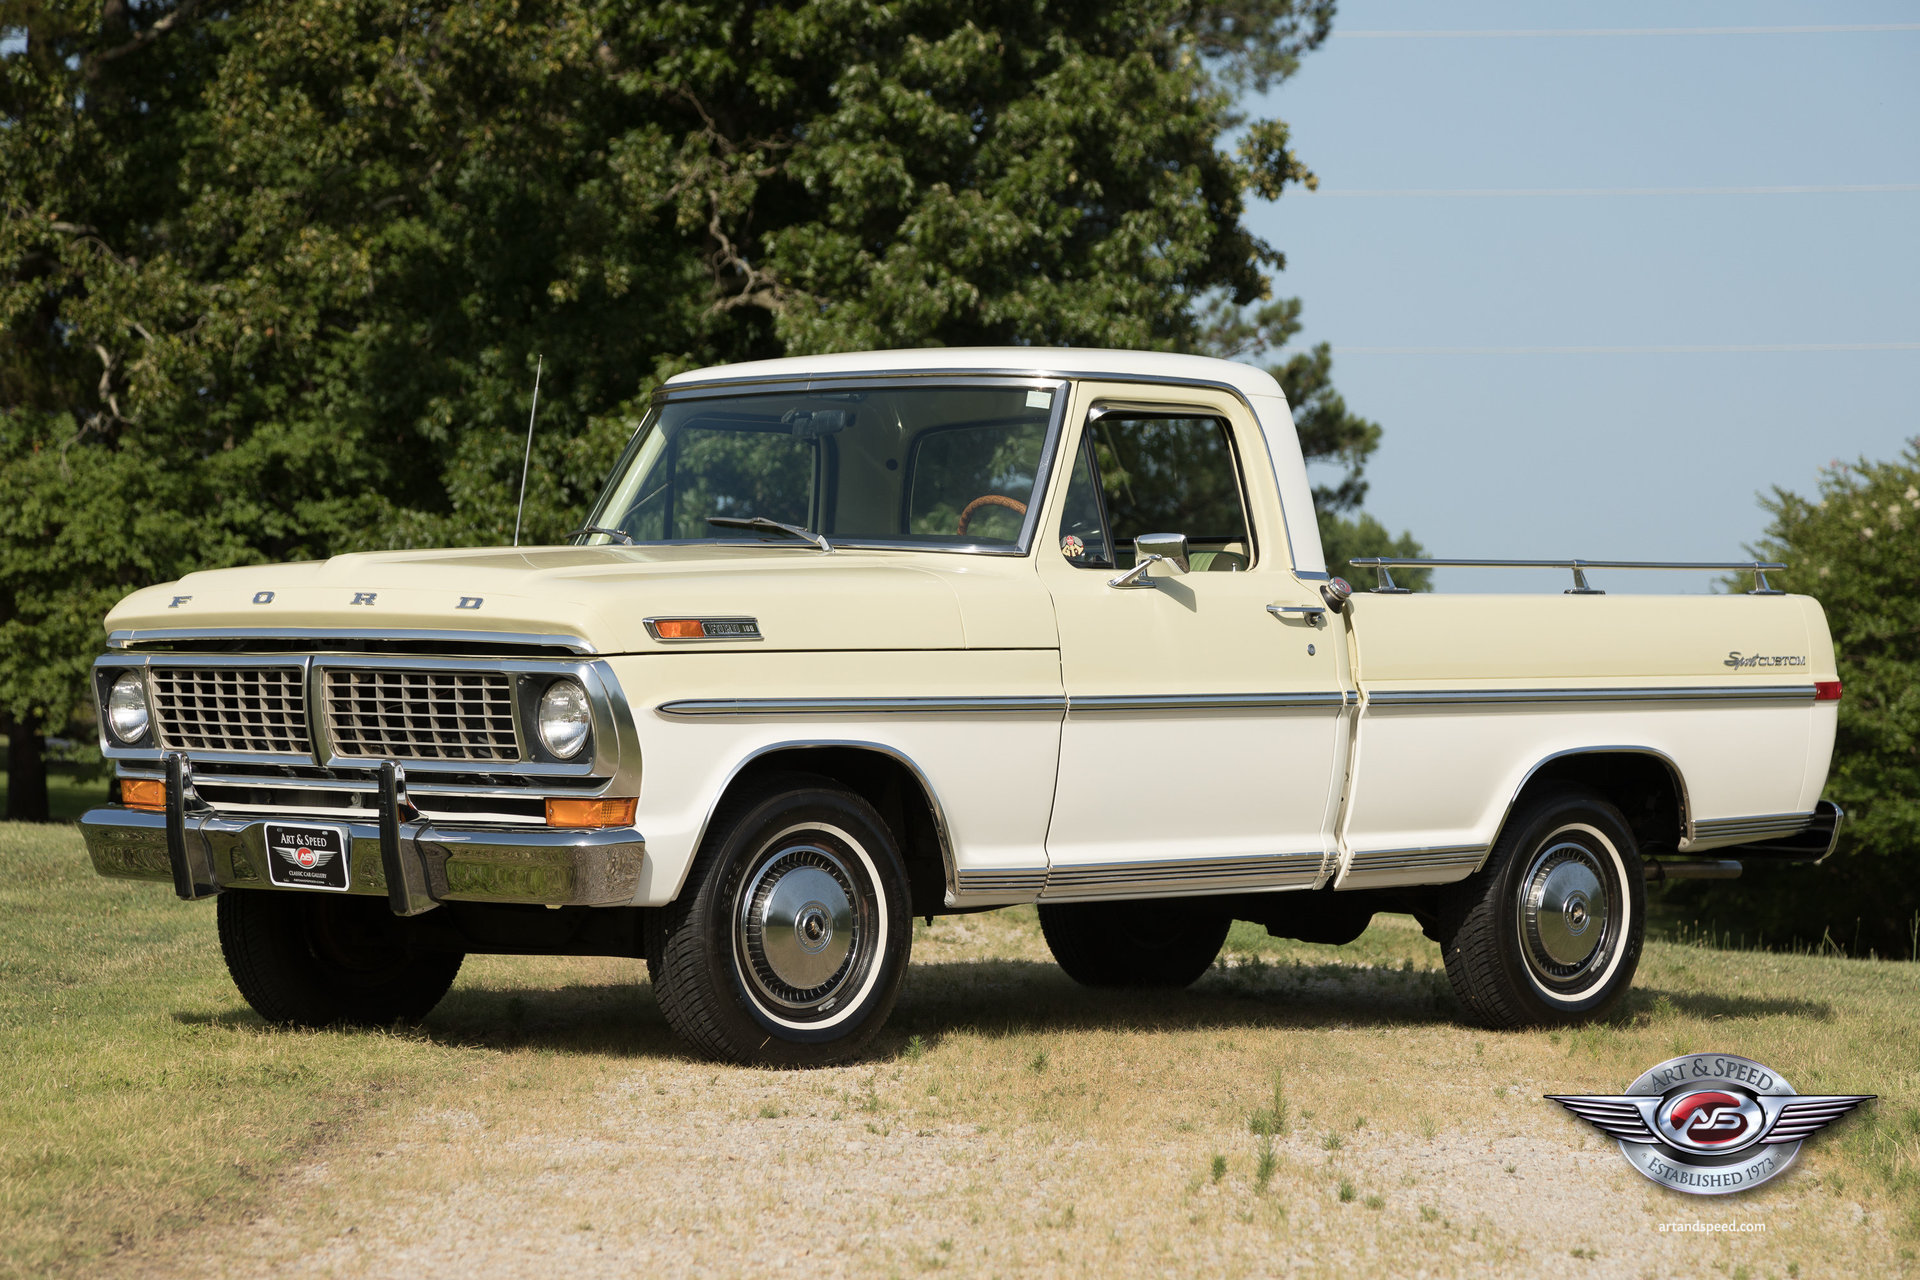 1970 Ford F100 Berlin Motors Pickup Truck For Sale